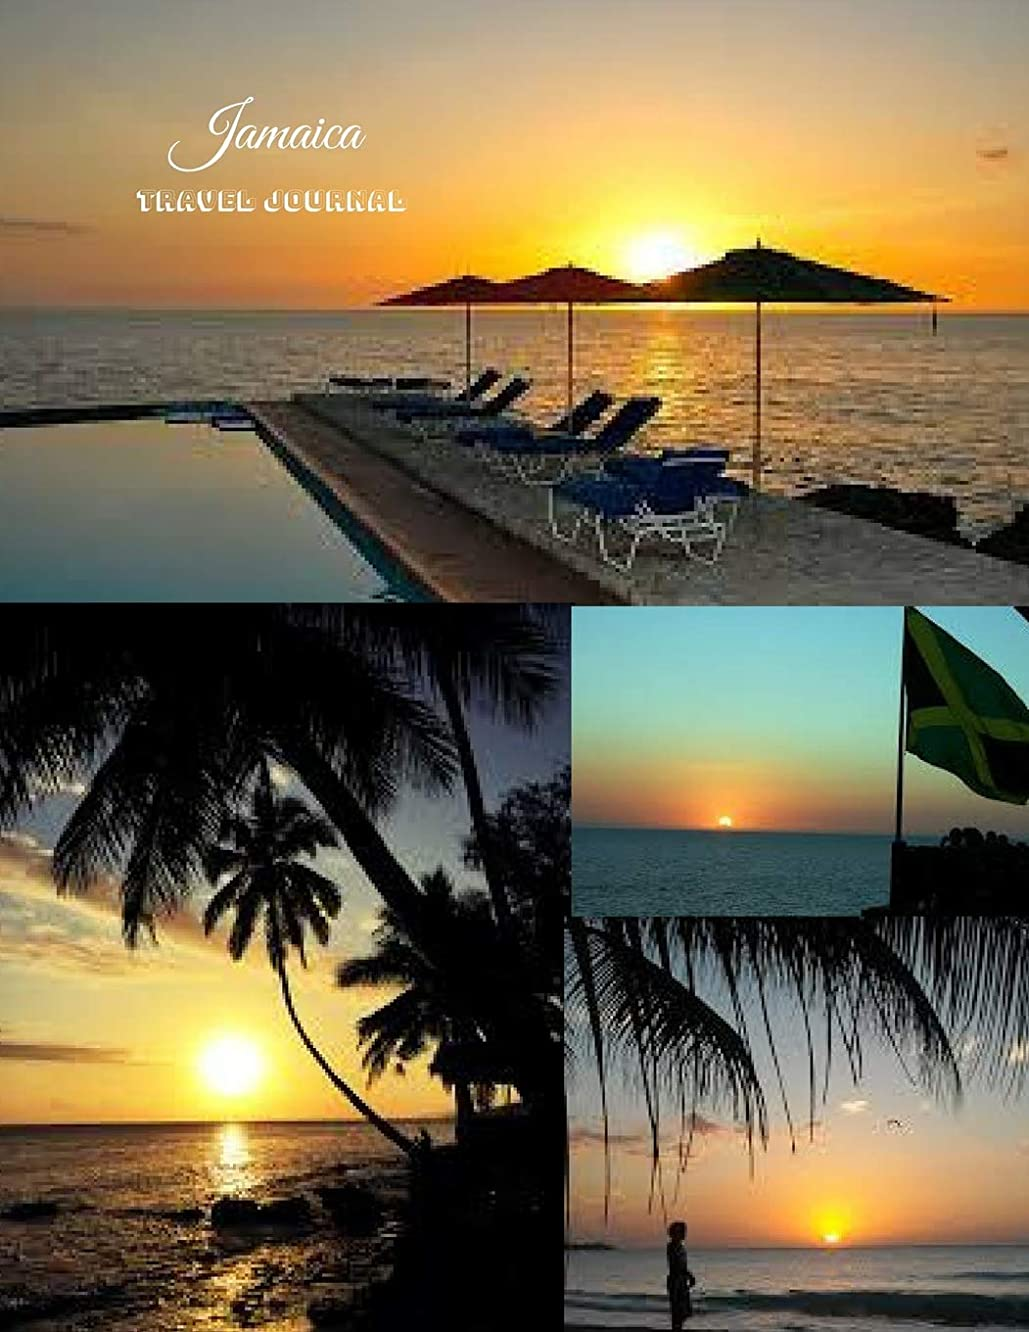 Jamaica Travel Journal: Document Your Trip Details and Memories